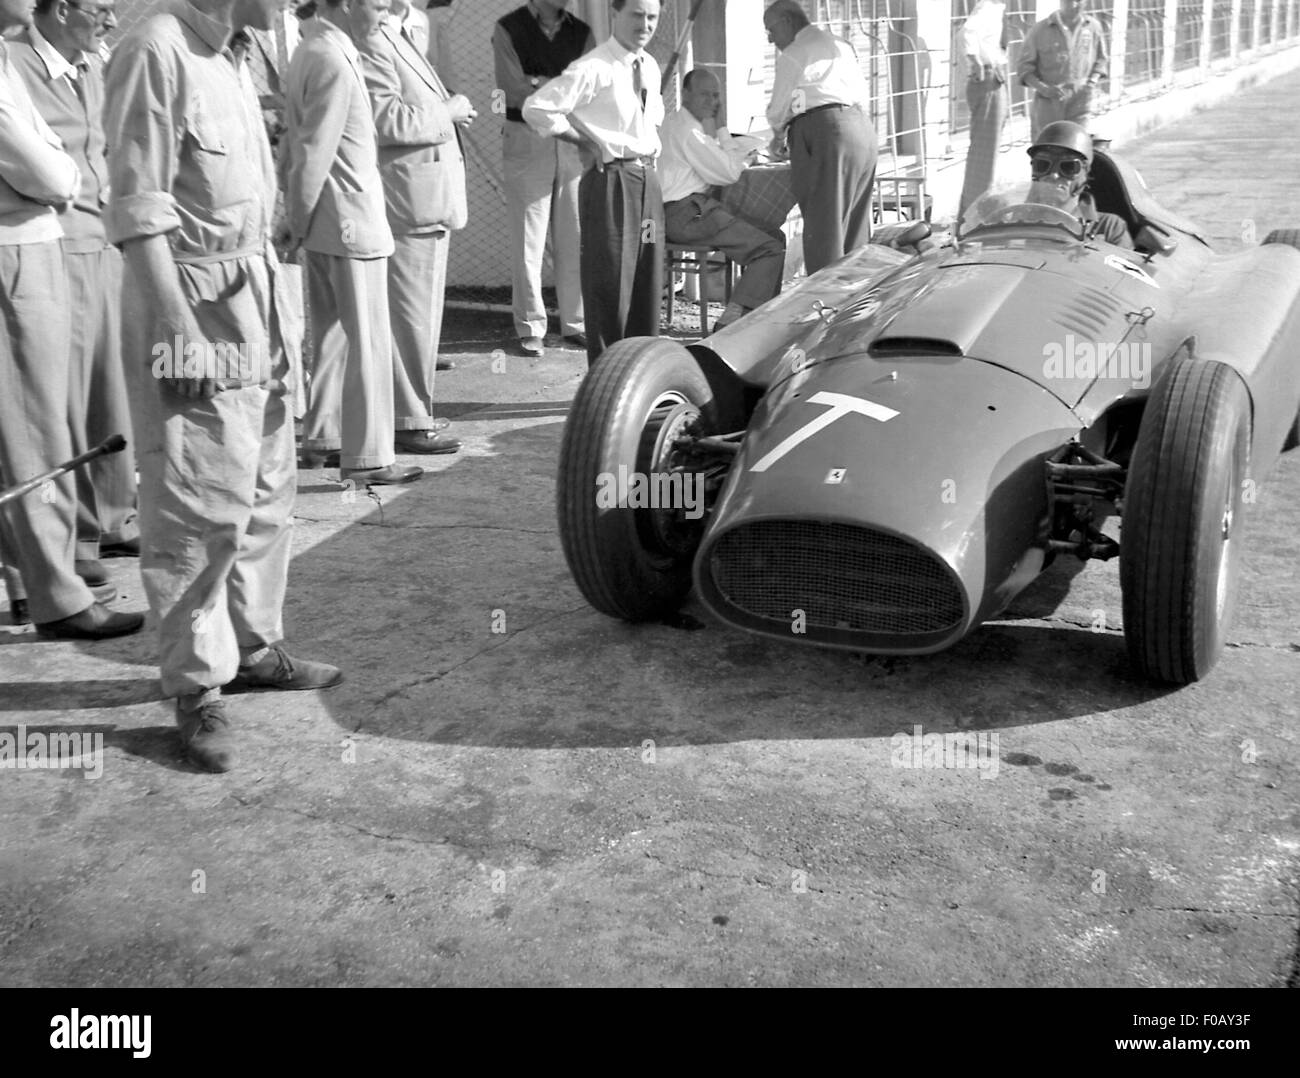 Italian GP in Monza 1956 Stock Photo